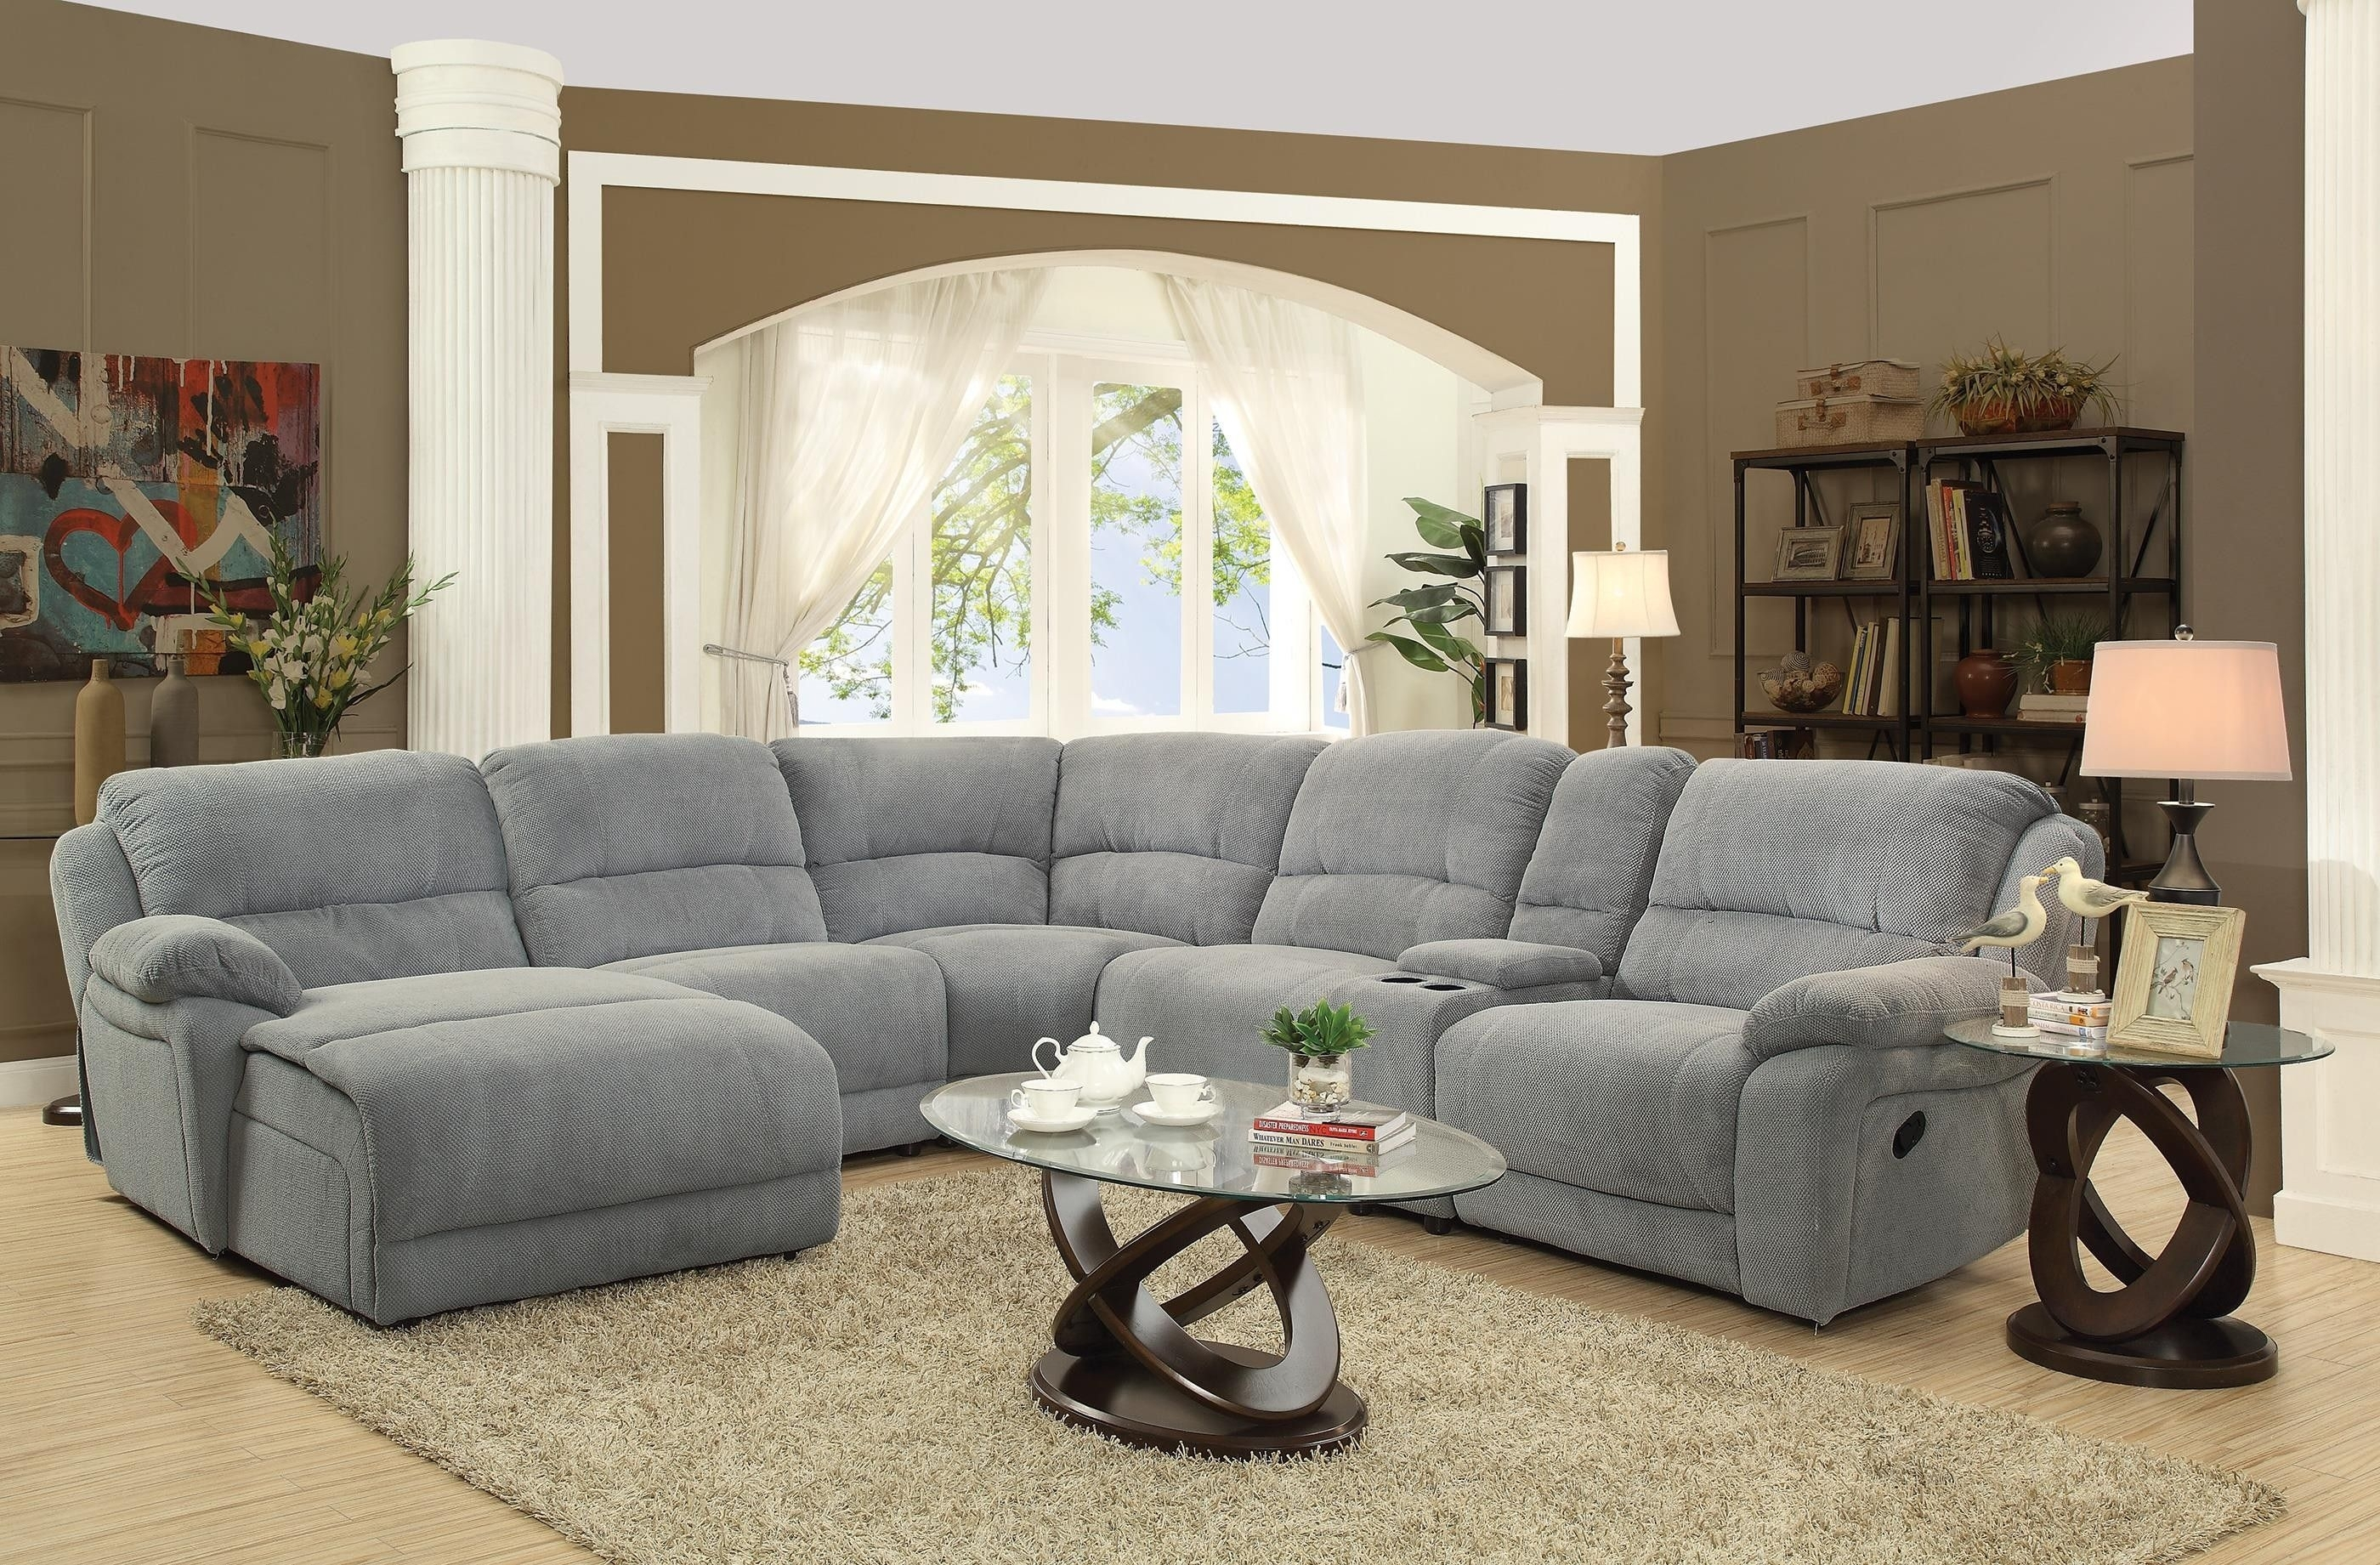 6 Piece Reclining Sectional Sofa | Baci Living Room intended for Denali Charcoal Grey 6 Piece Reclining Sectionals With 2 Power Headrests (Image 2 of 30)